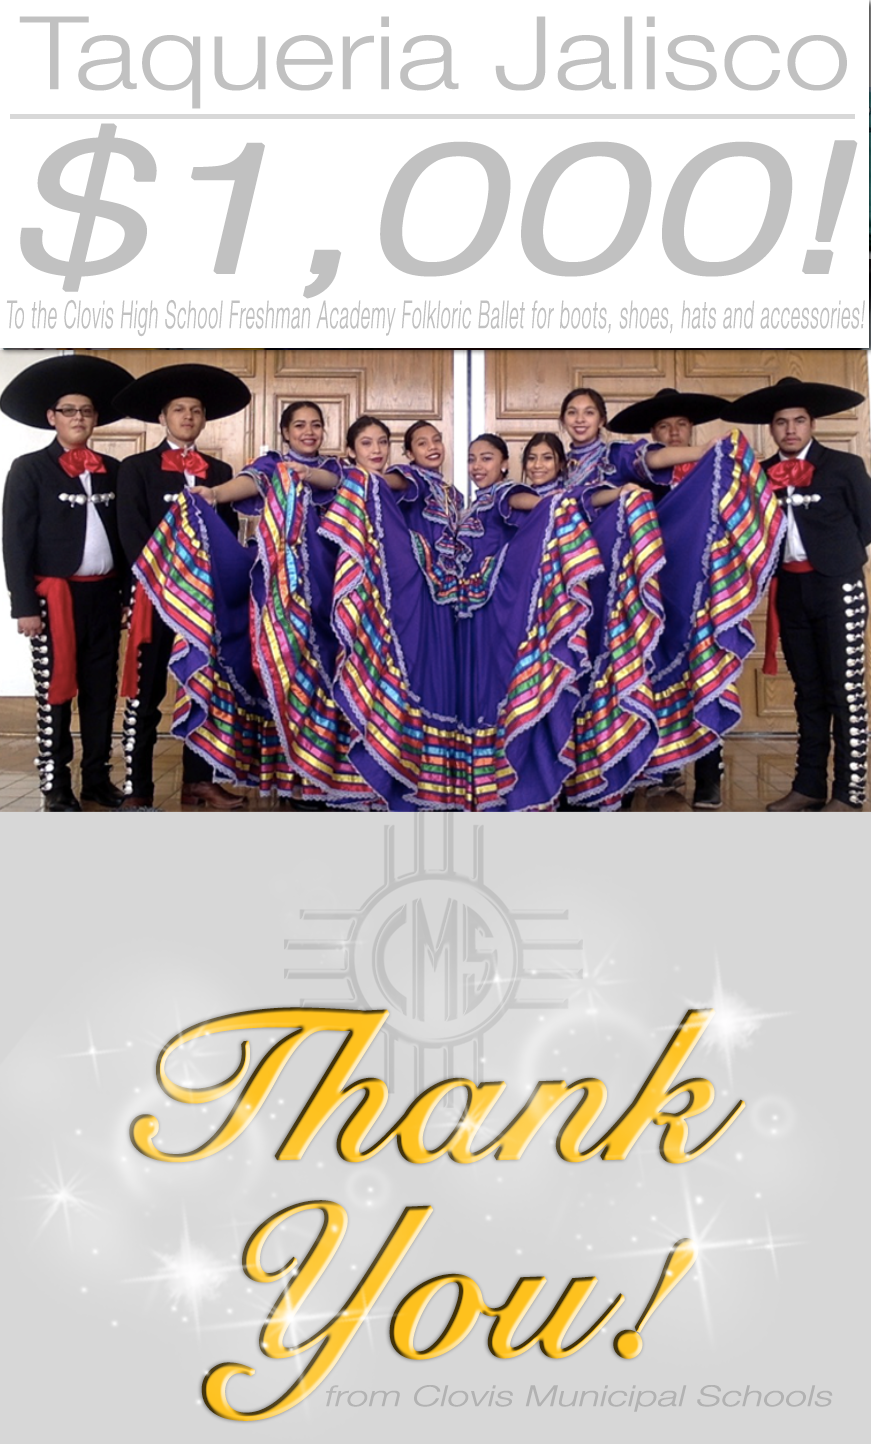 Image of text announcing donation from Taqueria Jalisco